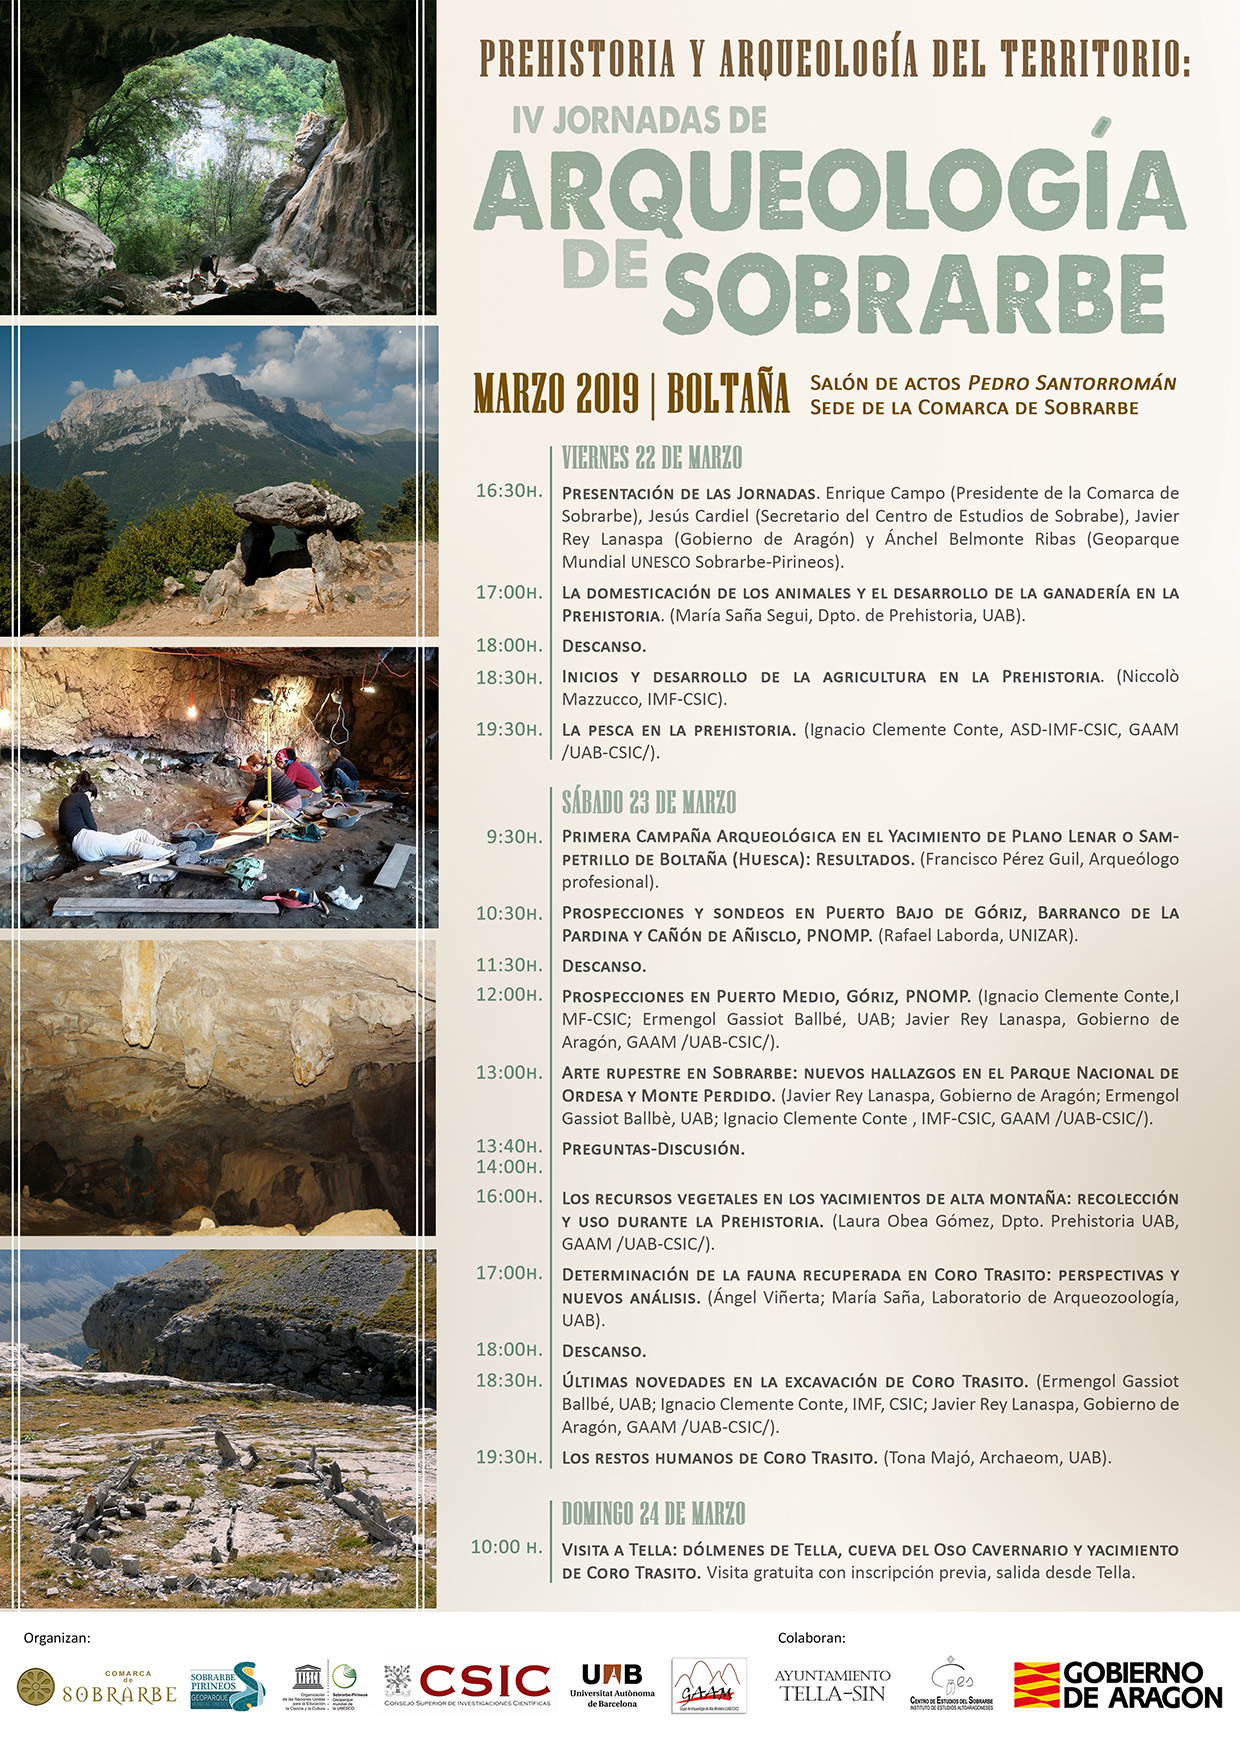 Forthcoming Open Workshop: IV Jornadas de Arqueología de Sobrarbe